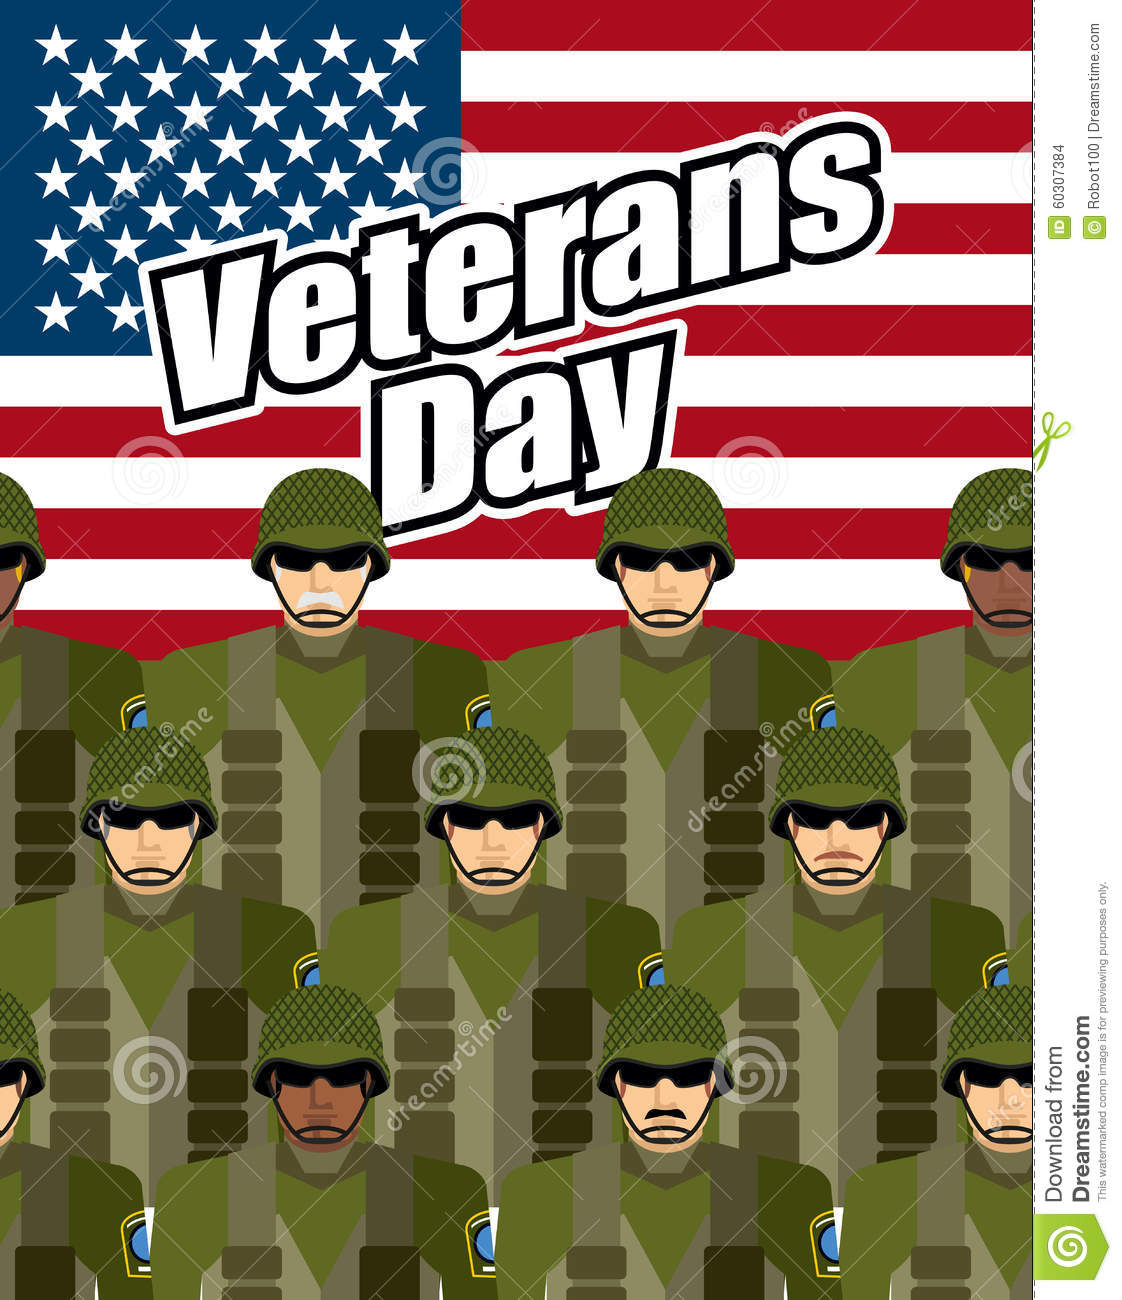 Veterans Day United States Military Against Backdrop Of